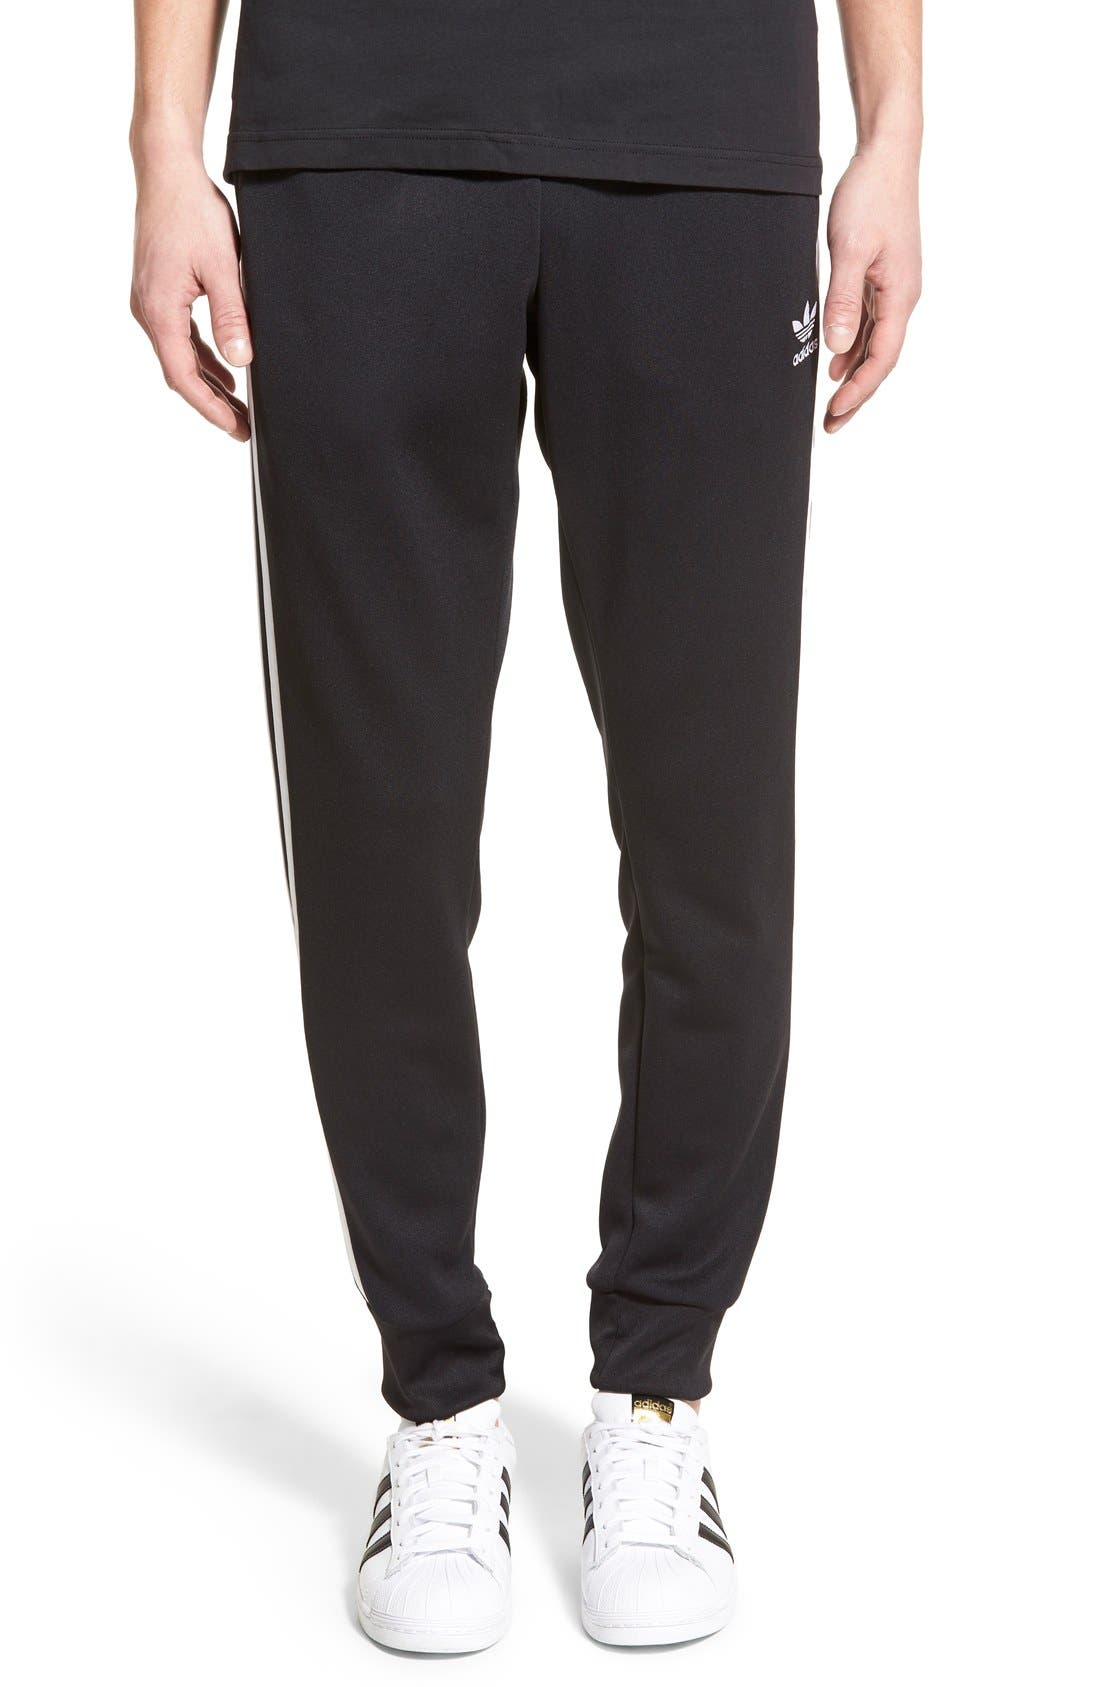 adidas Originals \u0027Superstar\u0027 Track Pants